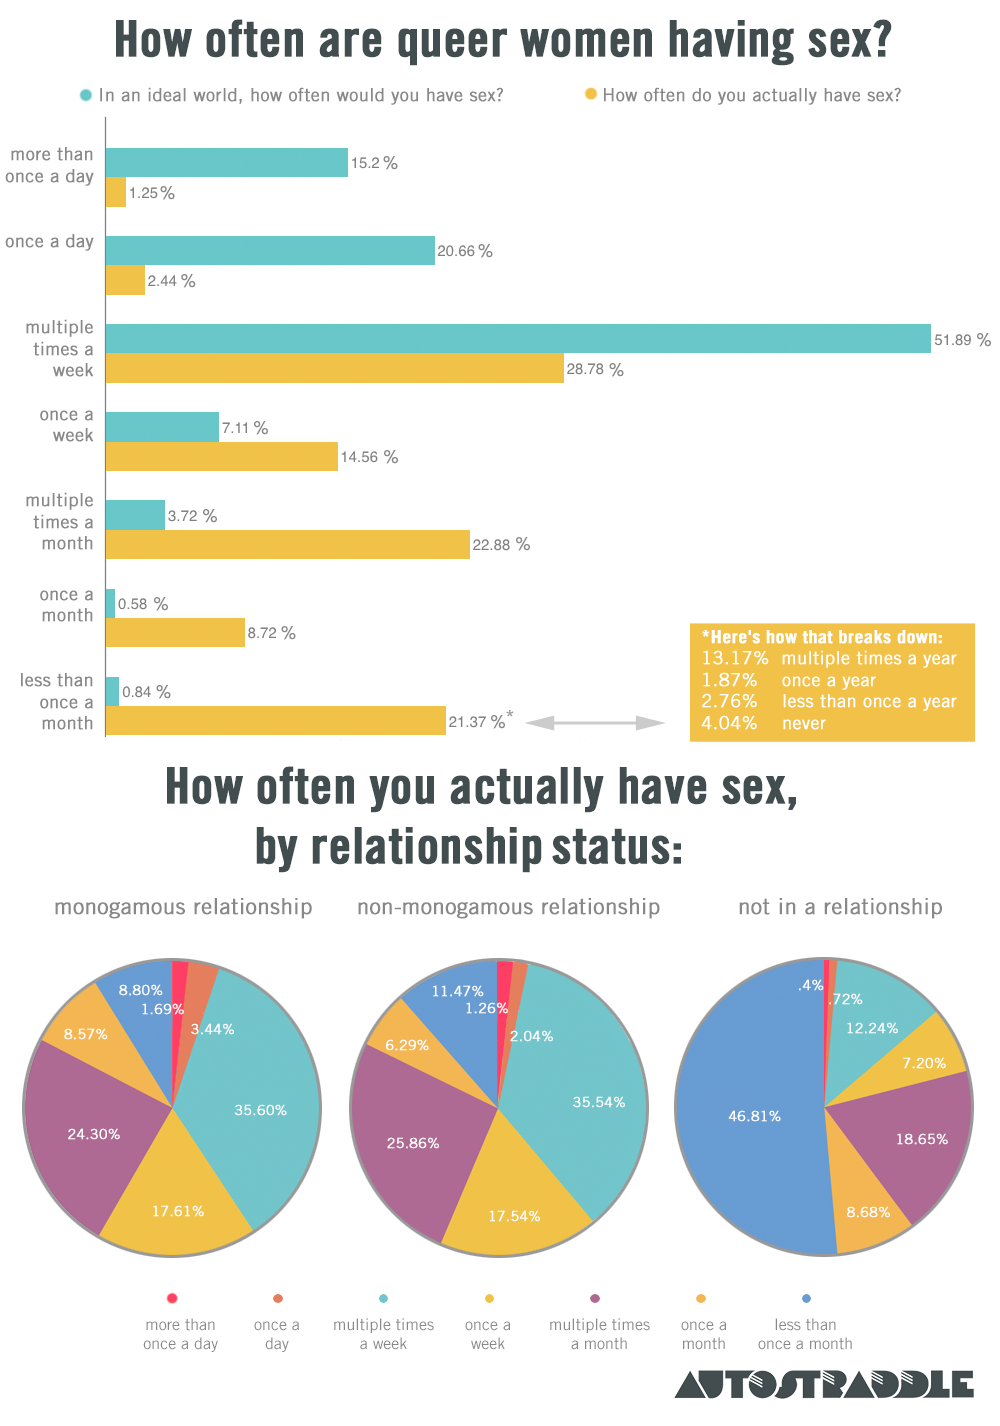 results of sex survey